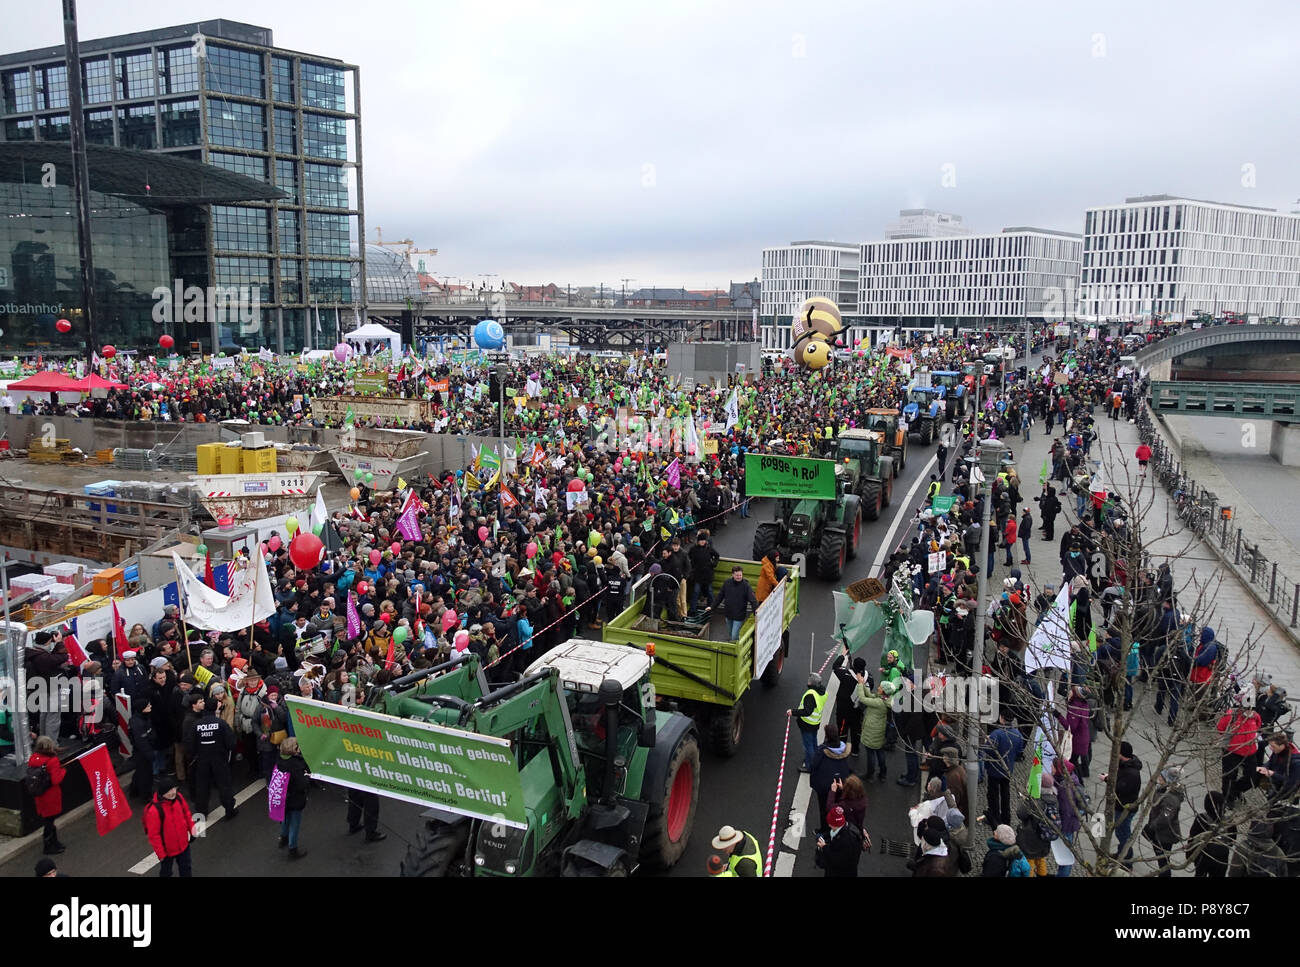 Berlin, Germany, Demo - We are sick of it! in front of the main station on the Washingtonplatz - Stock Image